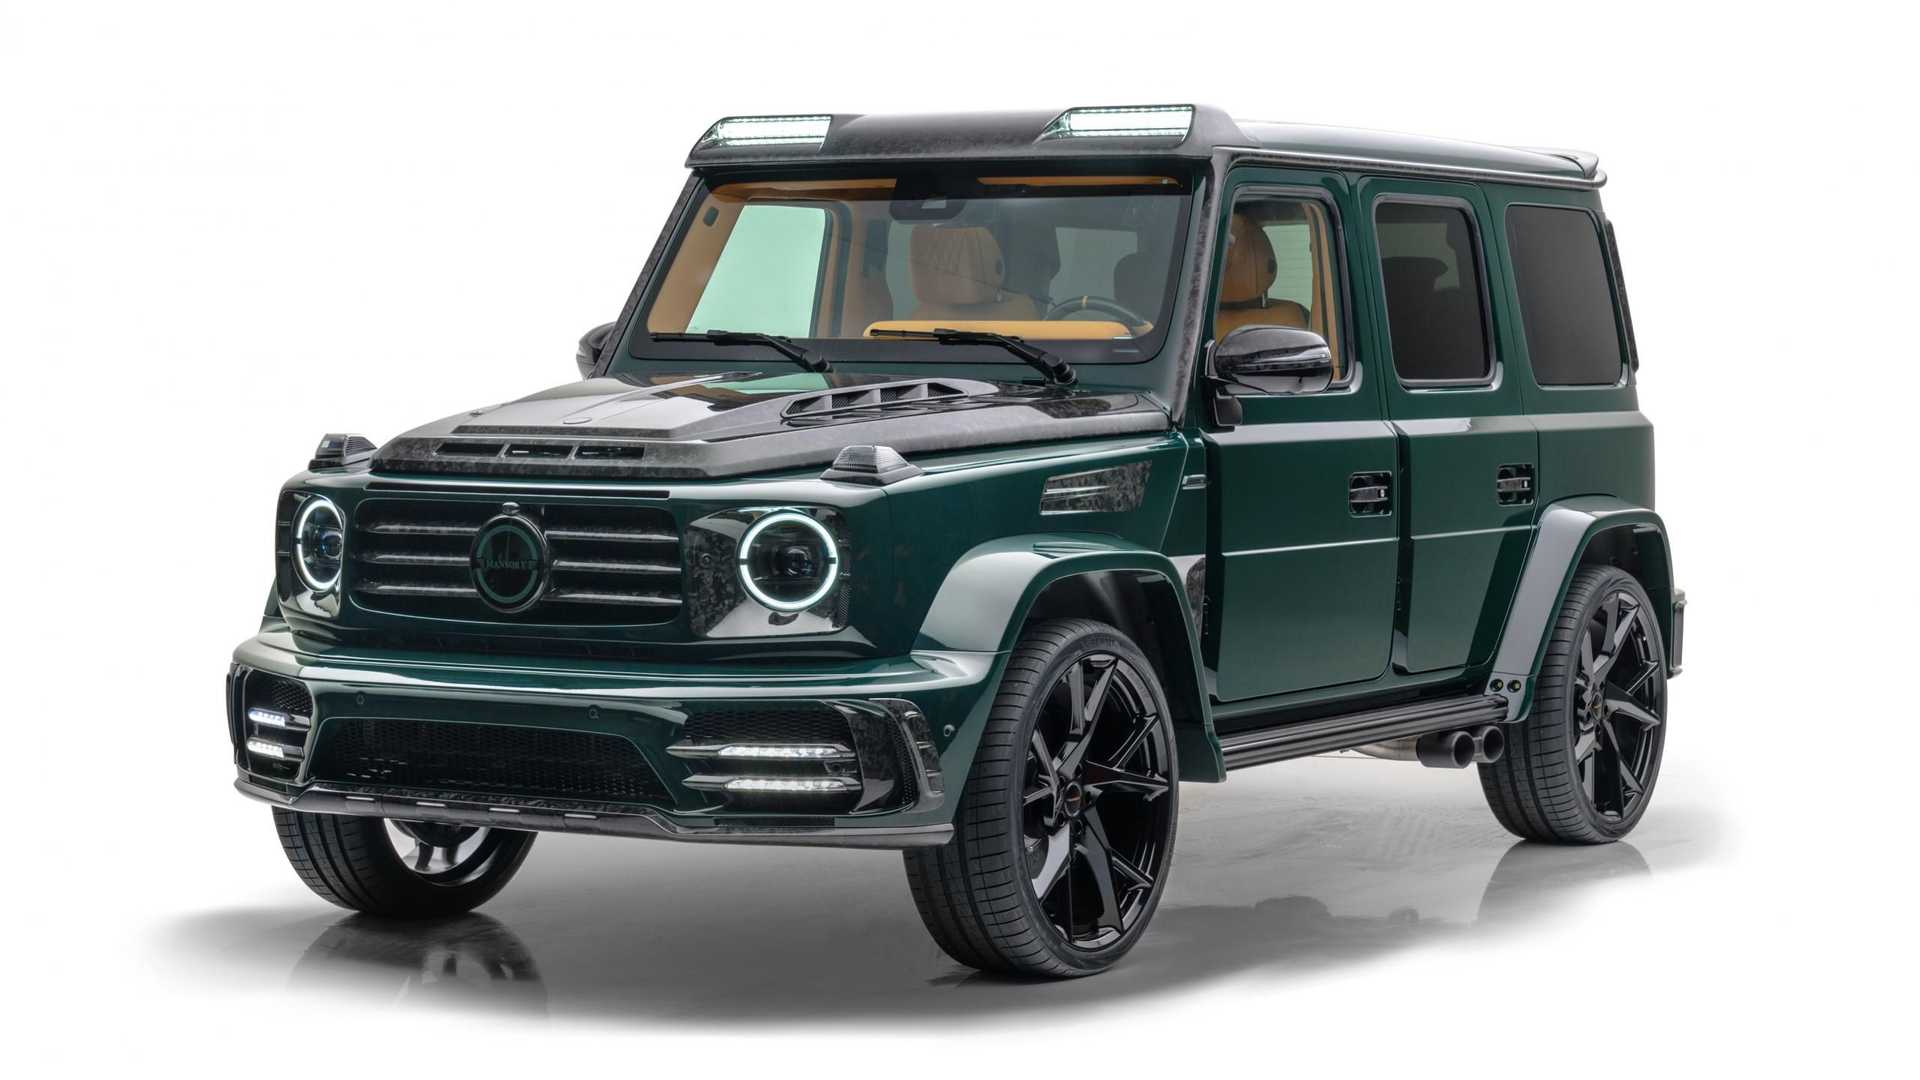 Mansory is no stranger to turning Mercedes-Benz G-Class SUVs into armored cars or even pickup trucks, and while the Gronos is neither, it still packs plenty of innate charm and charisma.